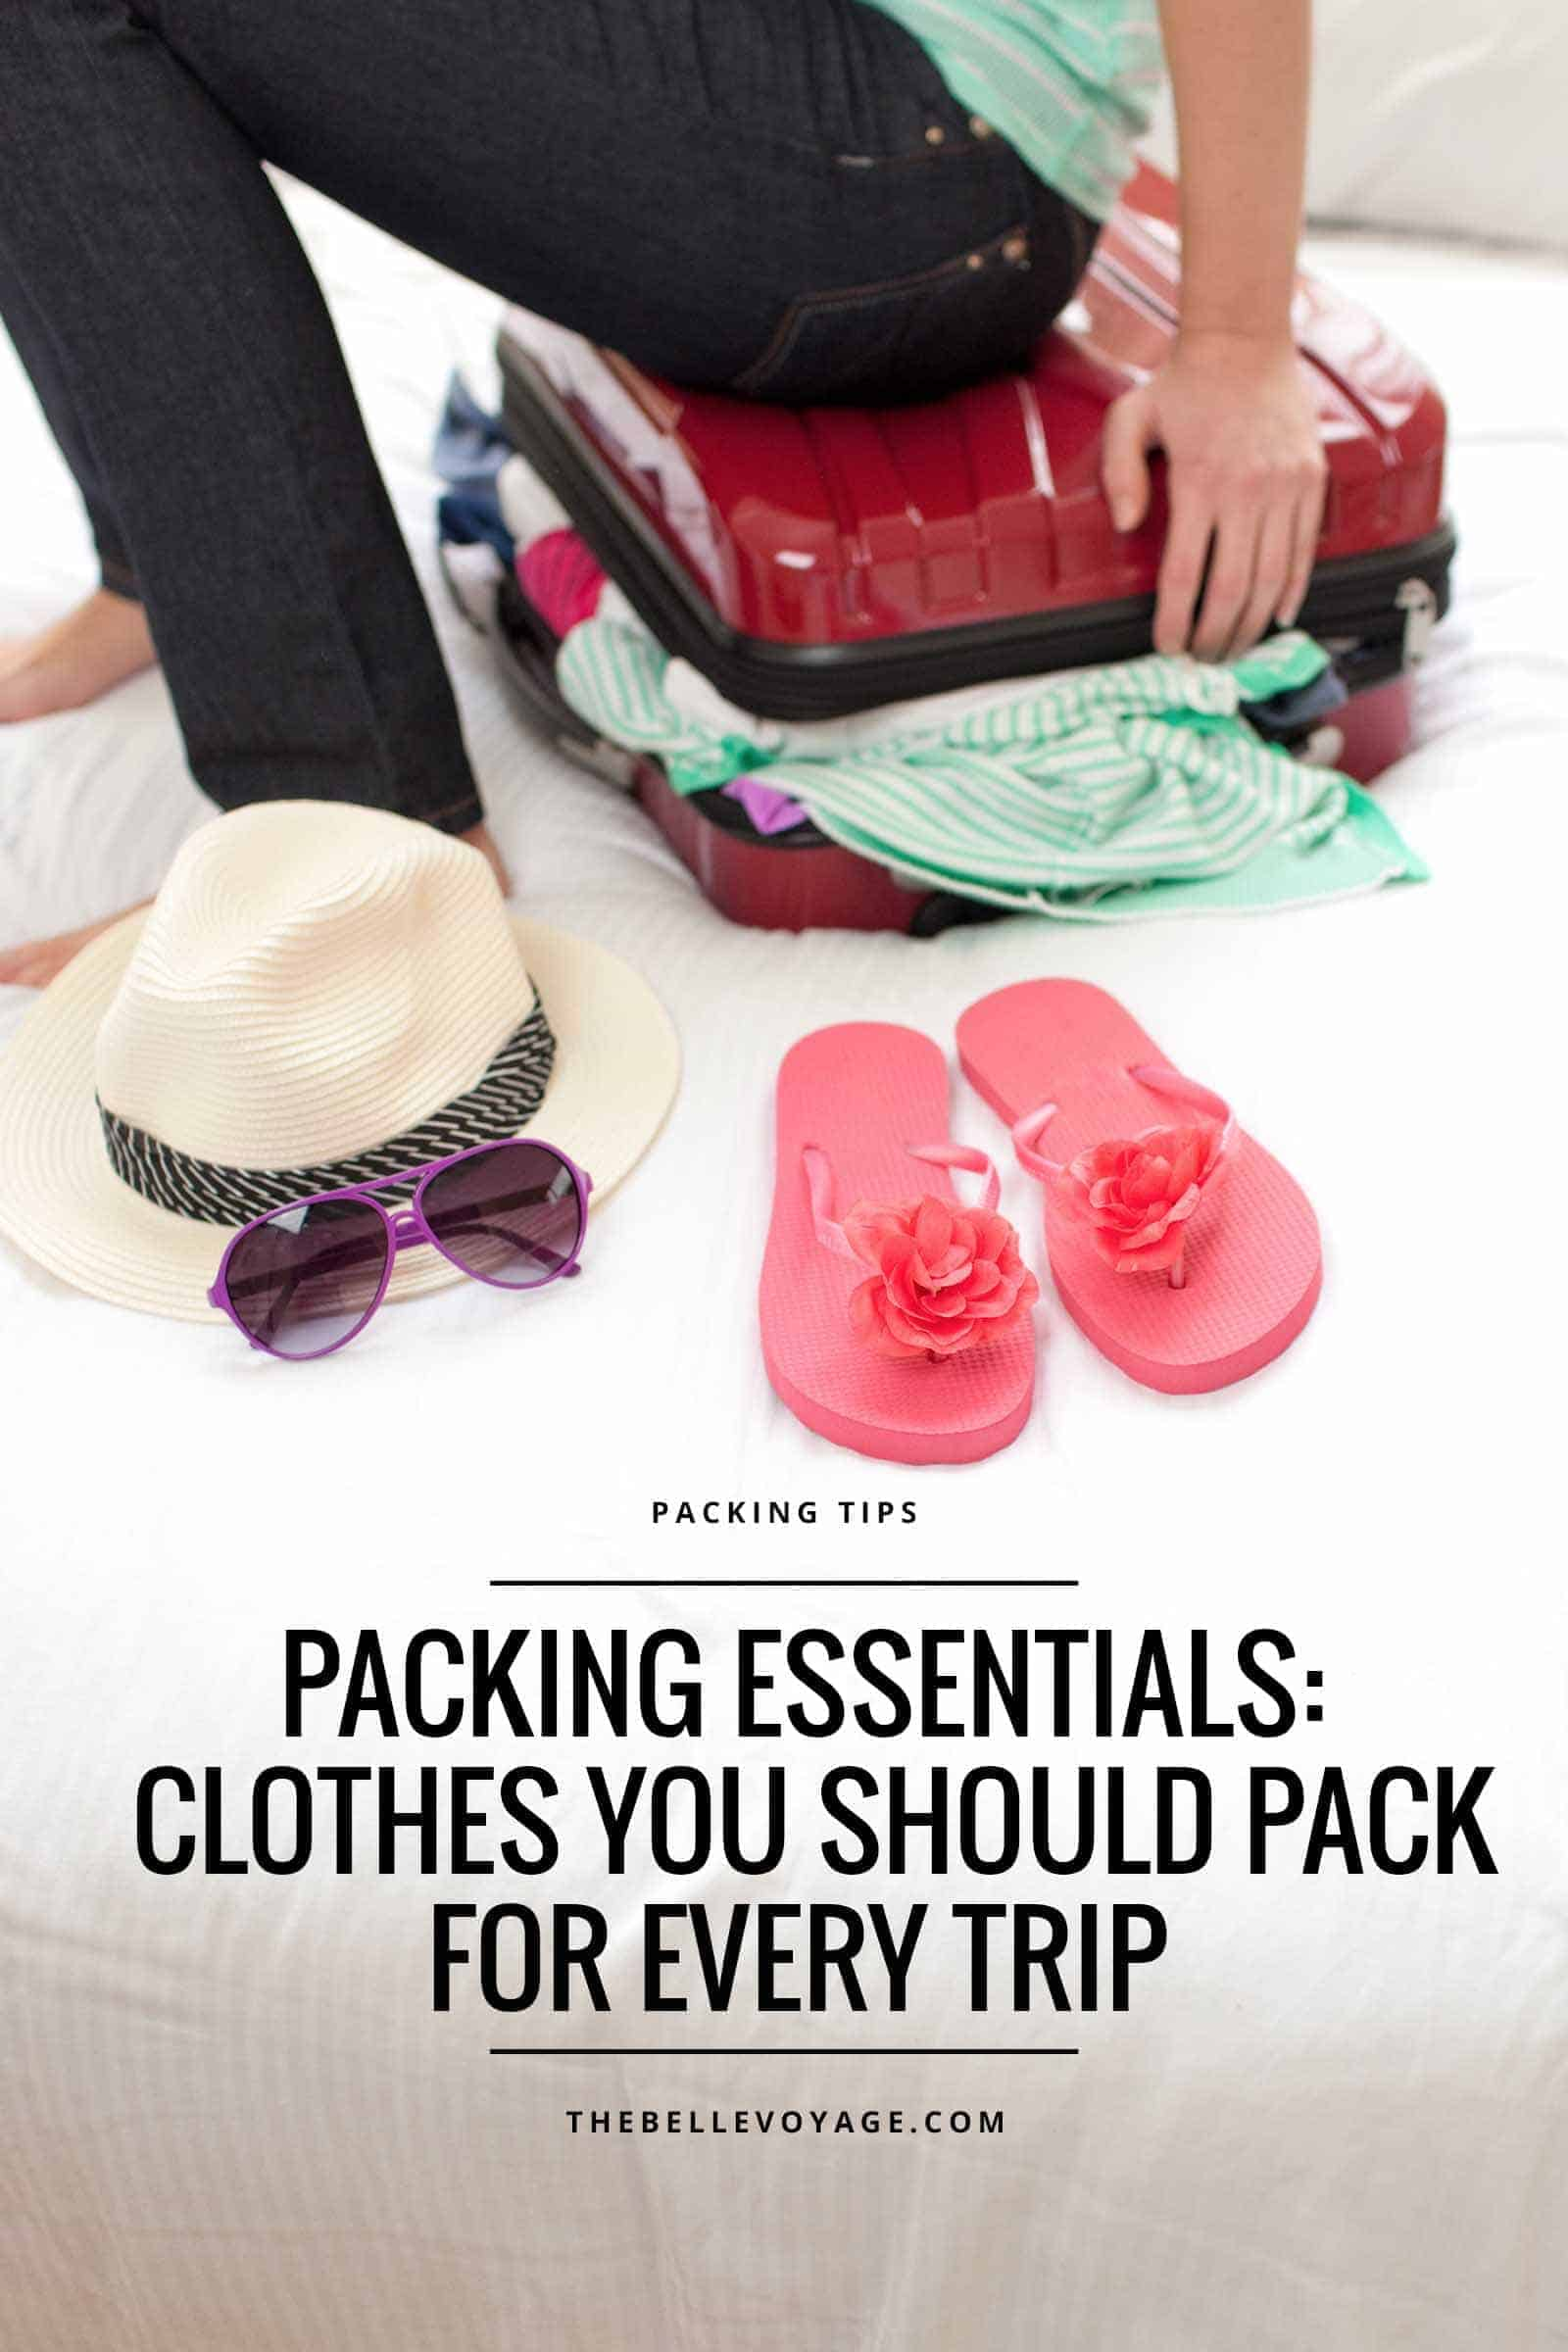 Clothes To Pack For Every Trip The Belle Voyage